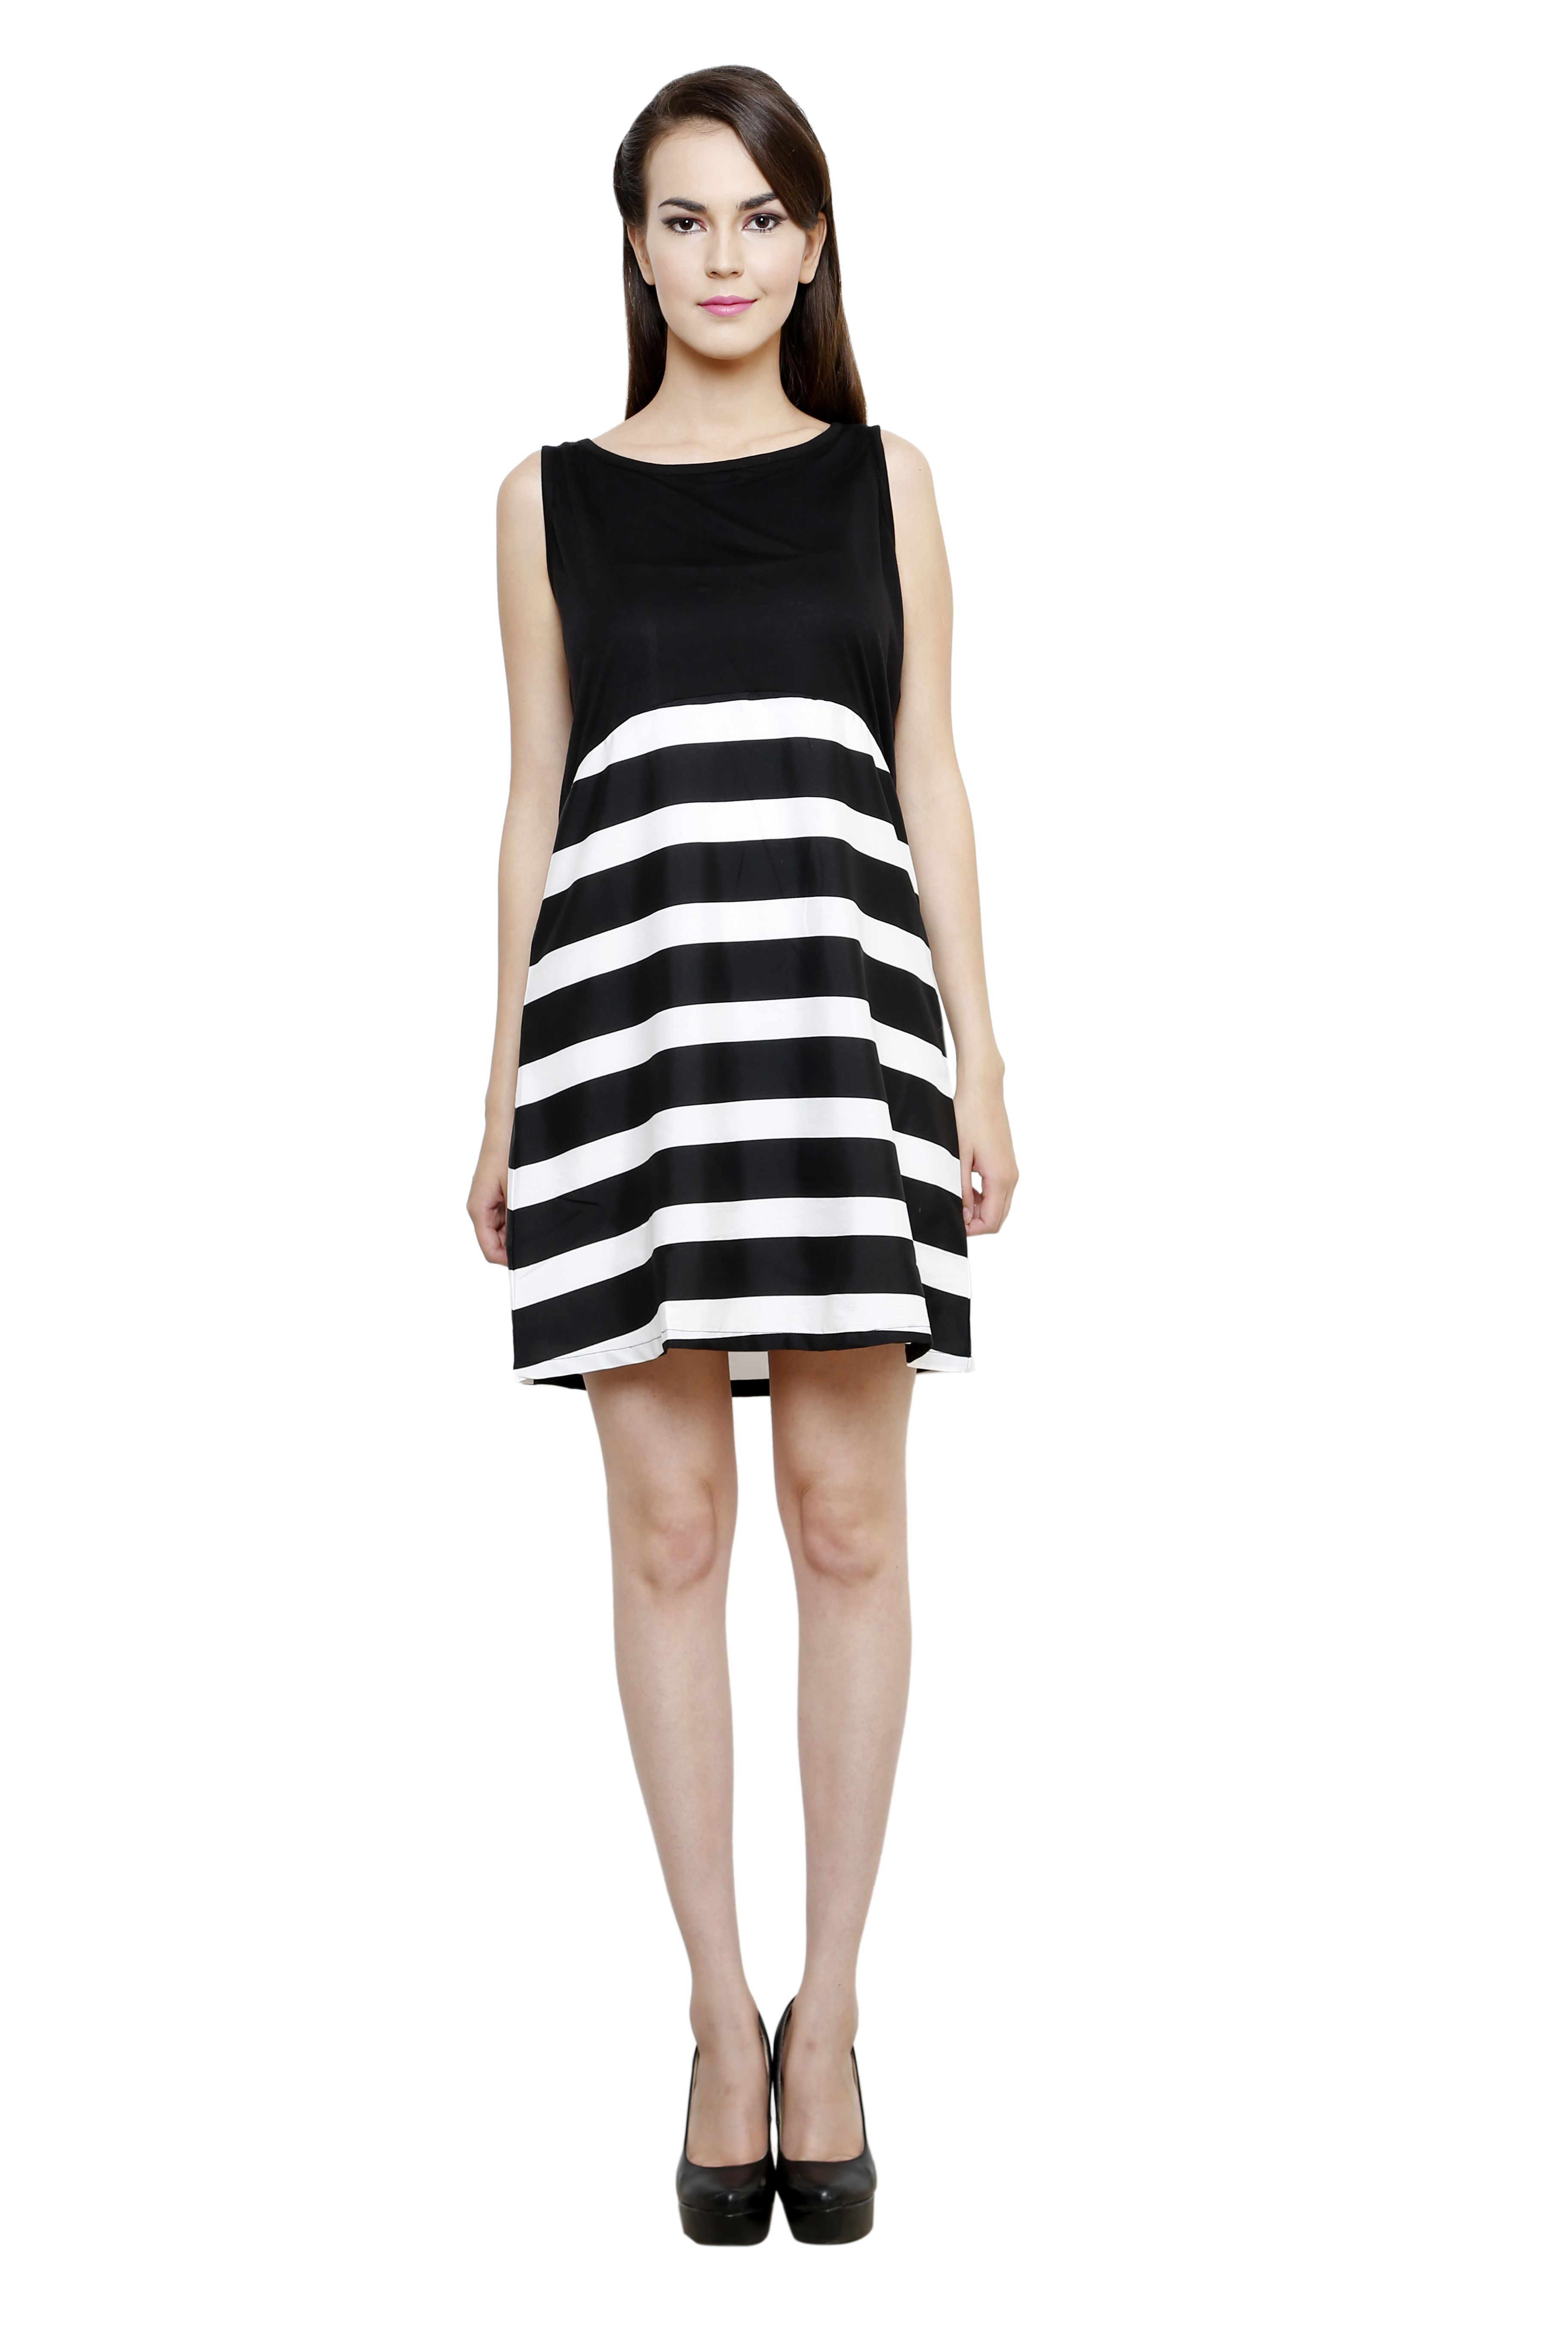 Flaunt a nofuss look by wearing this black coloured dress from i am